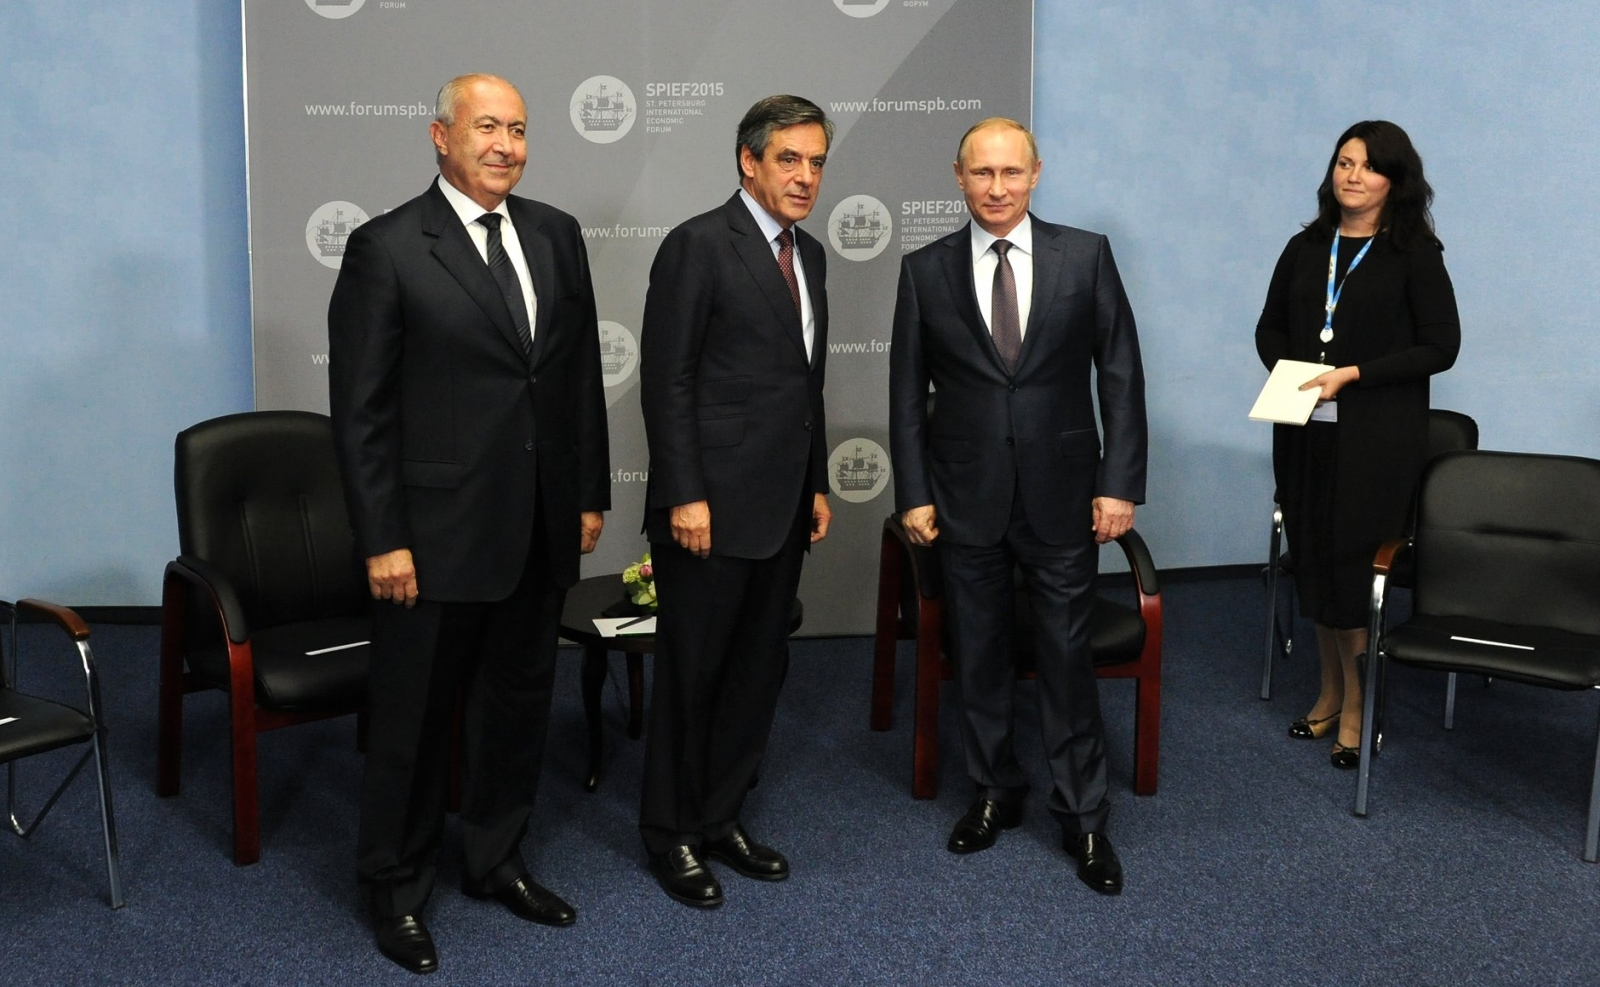 Fillon meets Putin at SPIEF 2015